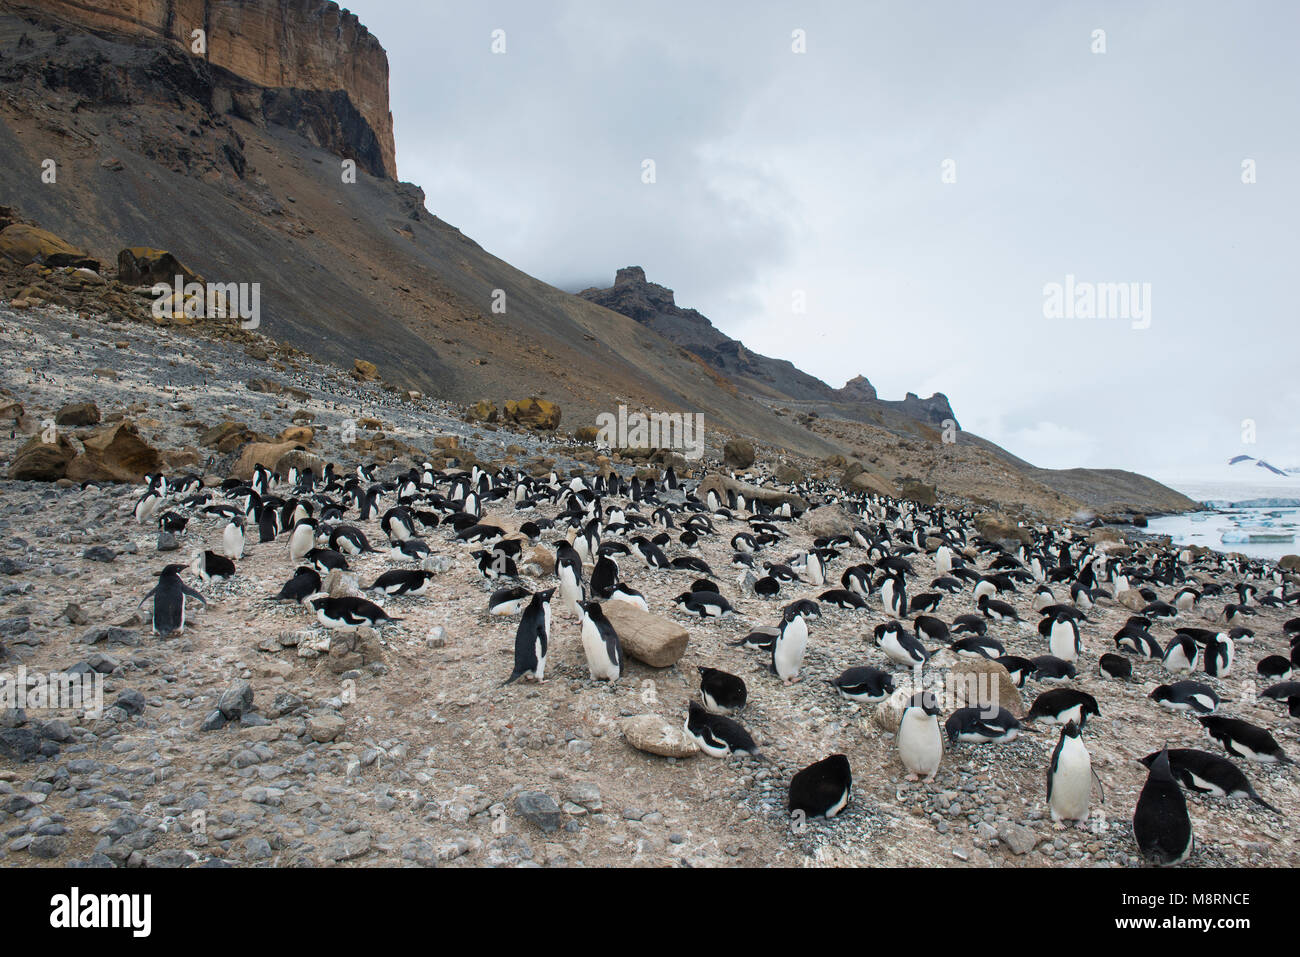 Adelie penguin colony nesting at Brown Bluff, Antarctica. - Stock Image